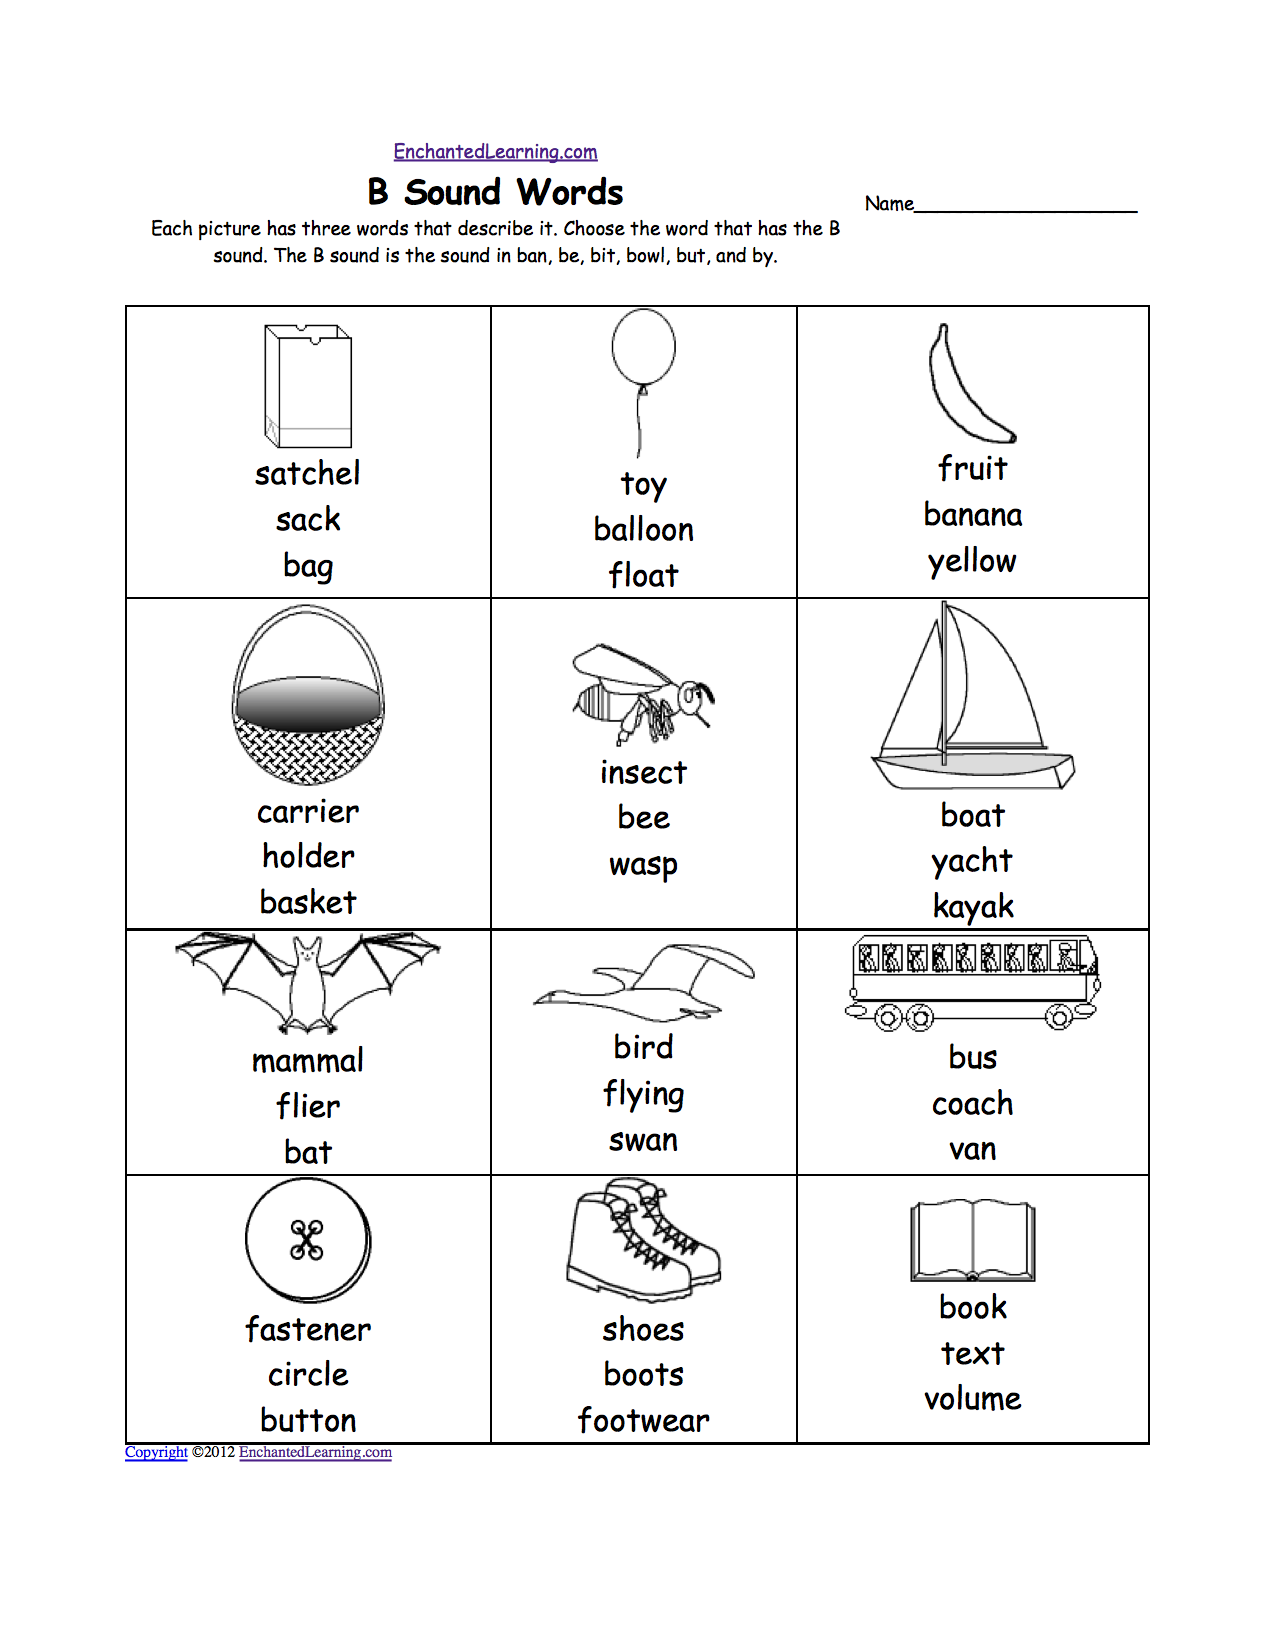 Weirdmailus  Inspiring Phonics Worksheets Multiple Choice Worksheets To Print  With Great Quotbquot Sound Phonics Worksheet Multiple Choice Each Picture Has Three Words That Describe It Choose The Word That Has A Quotbquot Sound The Quotbquot Sound Is The Sound  With Breathtaking Weekly Schedule Worksheet Also Kumon Worksheets Free Printable In Addition Place Value Decimals Worksheet And Medial Sound Worksheets As Well As Printable Cutting Worksheets Additionally Number  Preschool Worksheet From Enchantedlearningcom With Weirdmailus  Great Phonics Worksheets Multiple Choice Worksheets To Print  With Breathtaking Quotbquot Sound Phonics Worksheet Multiple Choice Each Picture Has Three Words That Describe It Choose The Word That Has A Quotbquot Sound The Quotbquot Sound Is The Sound  And Inspiring Weekly Schedule Worksheet Also Kumon Worksheets Free Printable In Addition Place Value Decimals Worksheet From Enchantedlearningcom